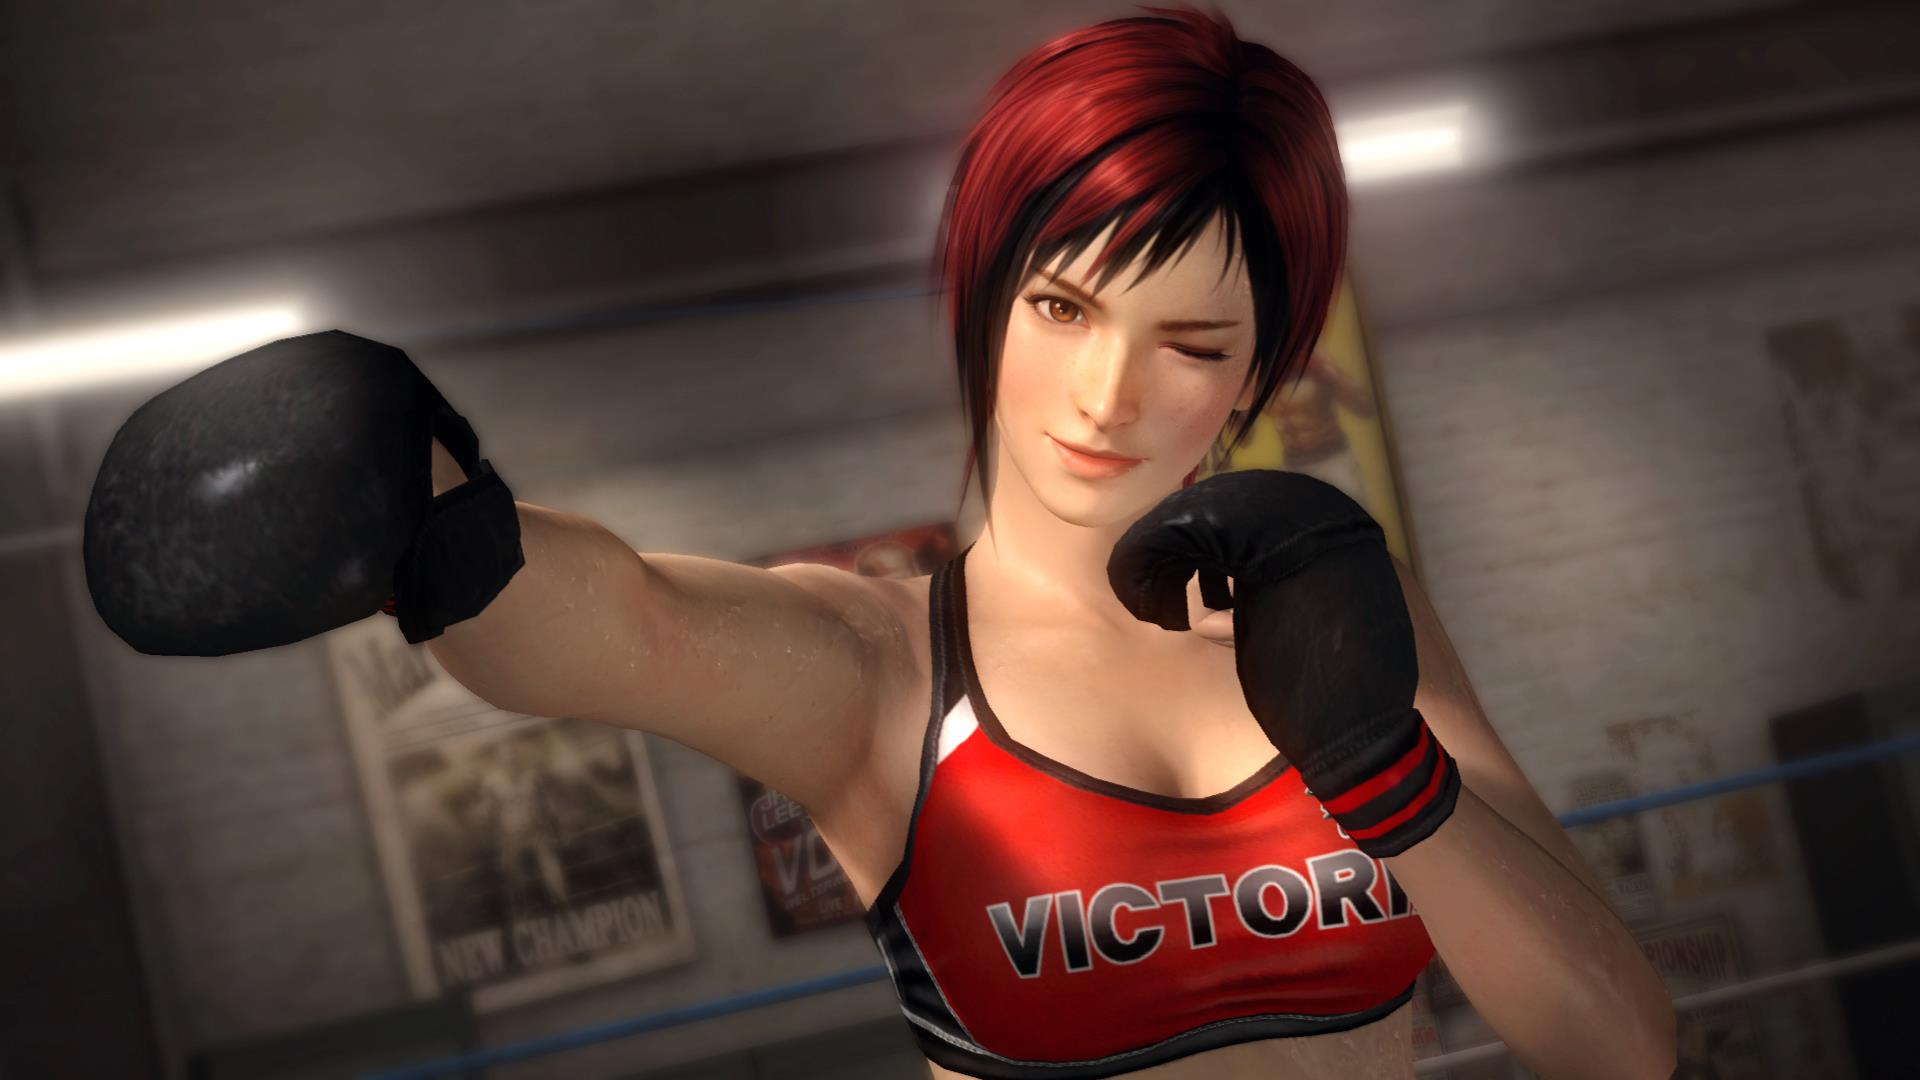 2015 By Stephen Comments Off on Dead or Alive 5 HD Wallpaper 1920x1080